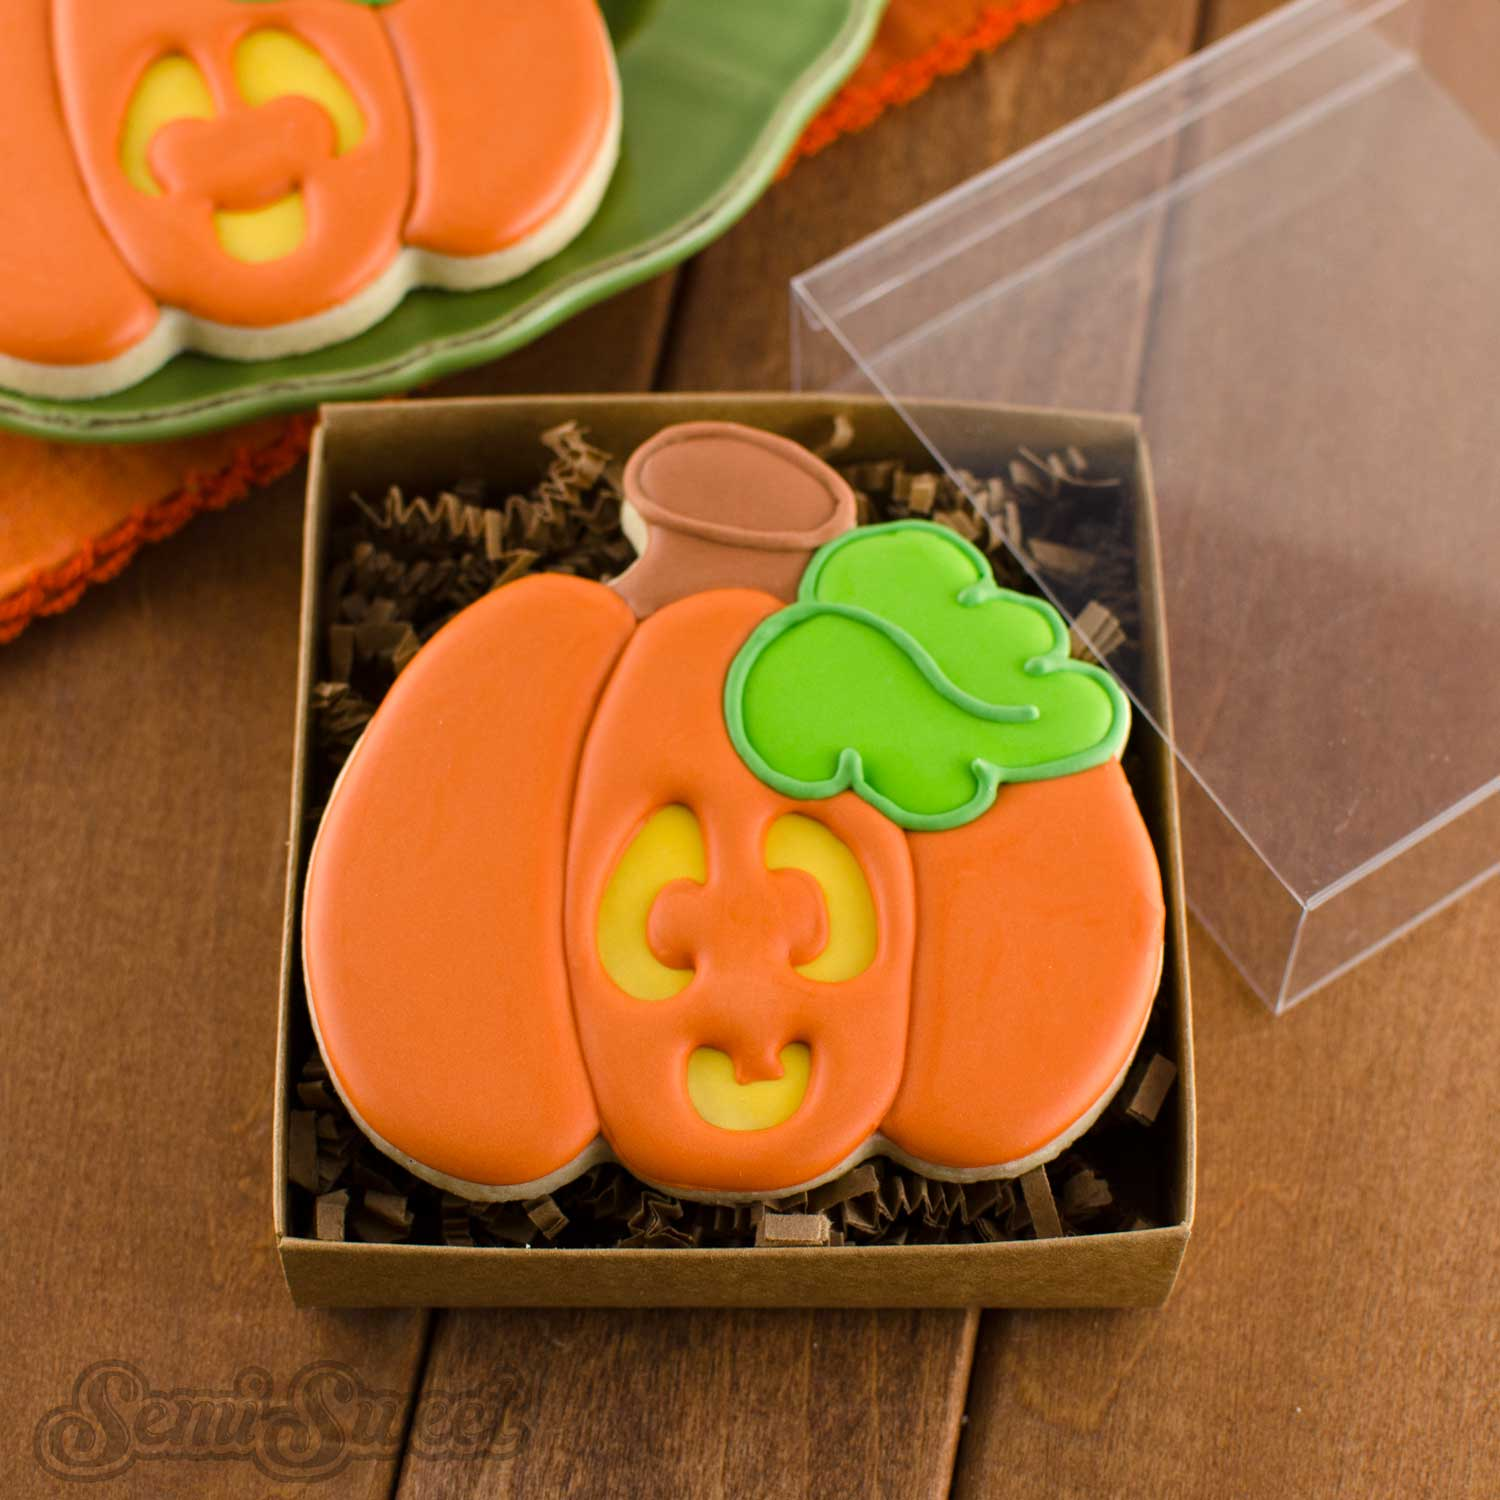 decorated pumpkin cookie in a box